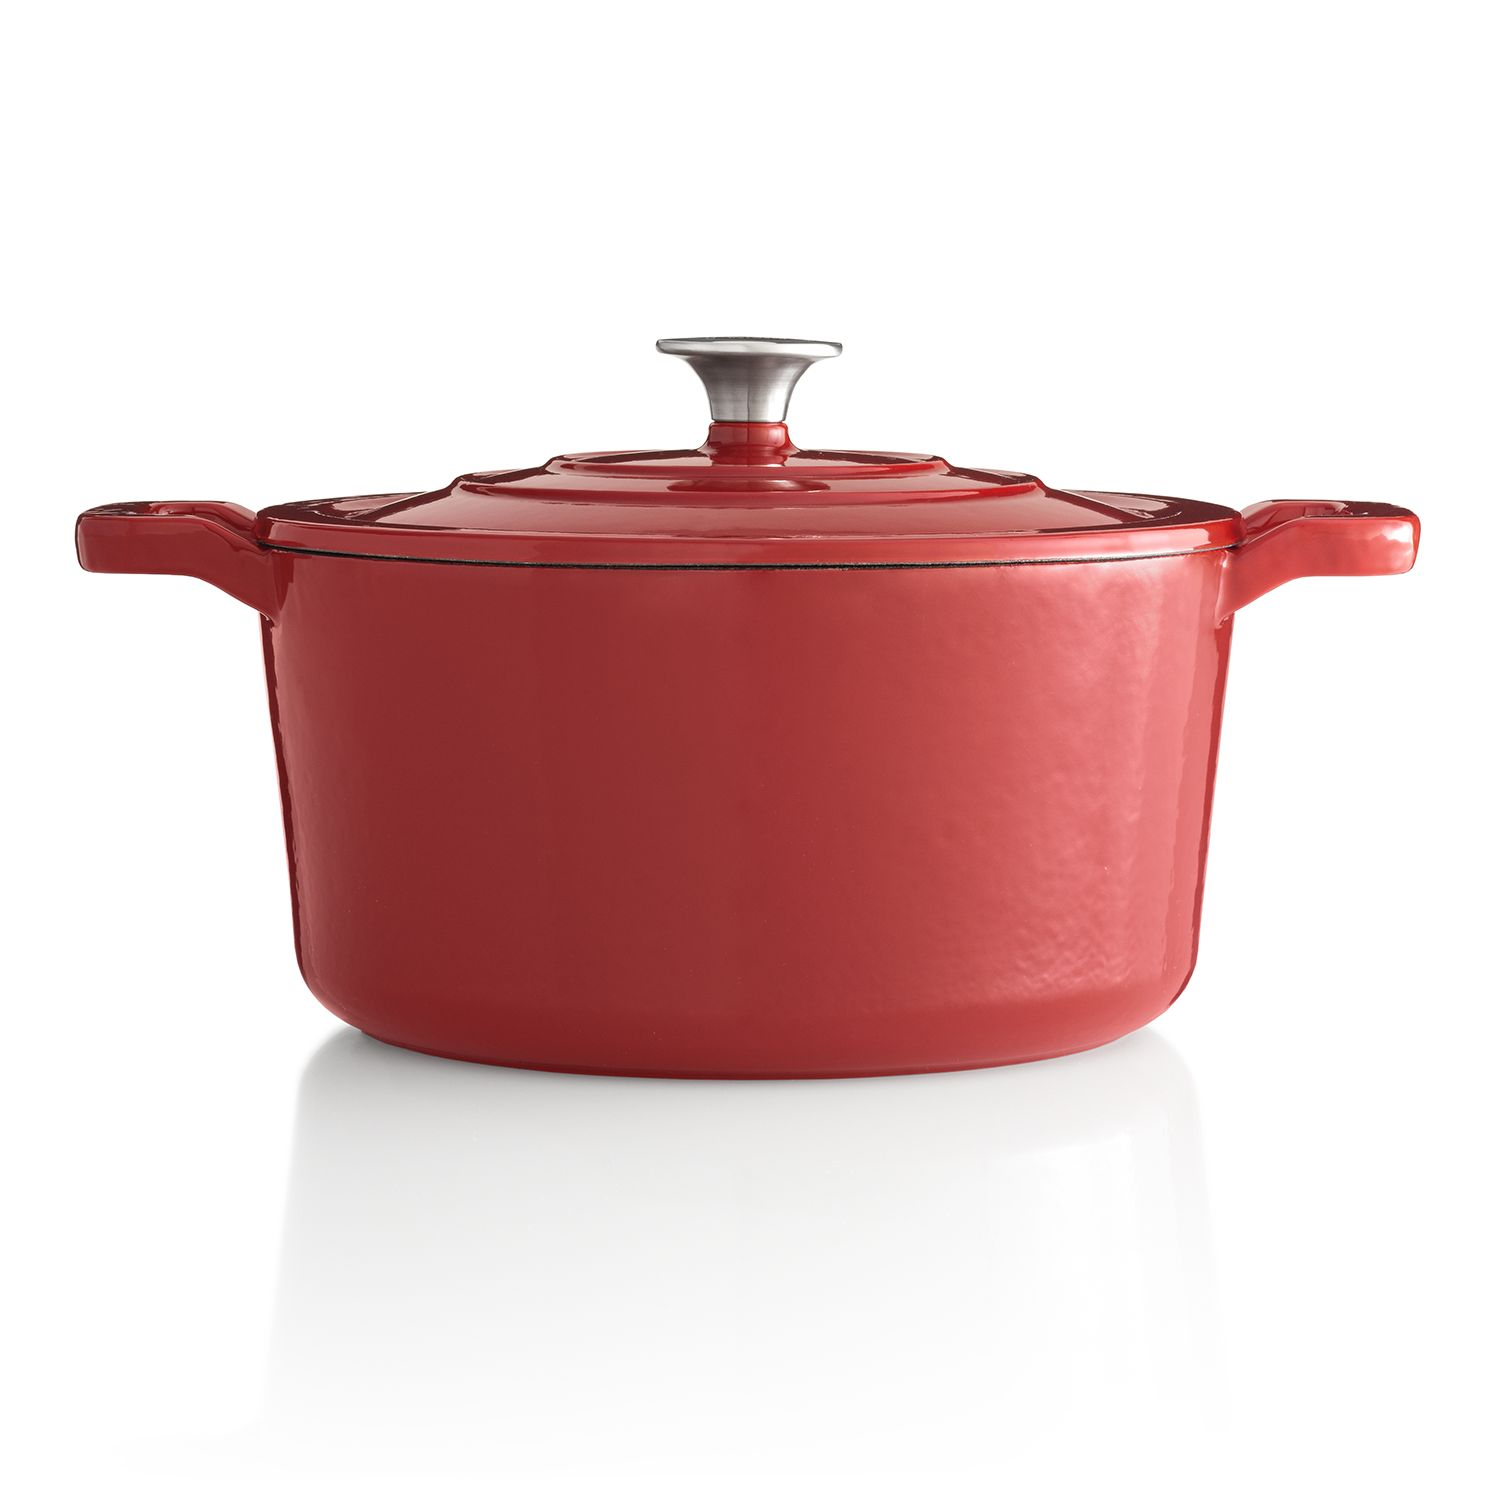 Network™ 5.5-qt. Enameled Cast-Iron Dutch Oven